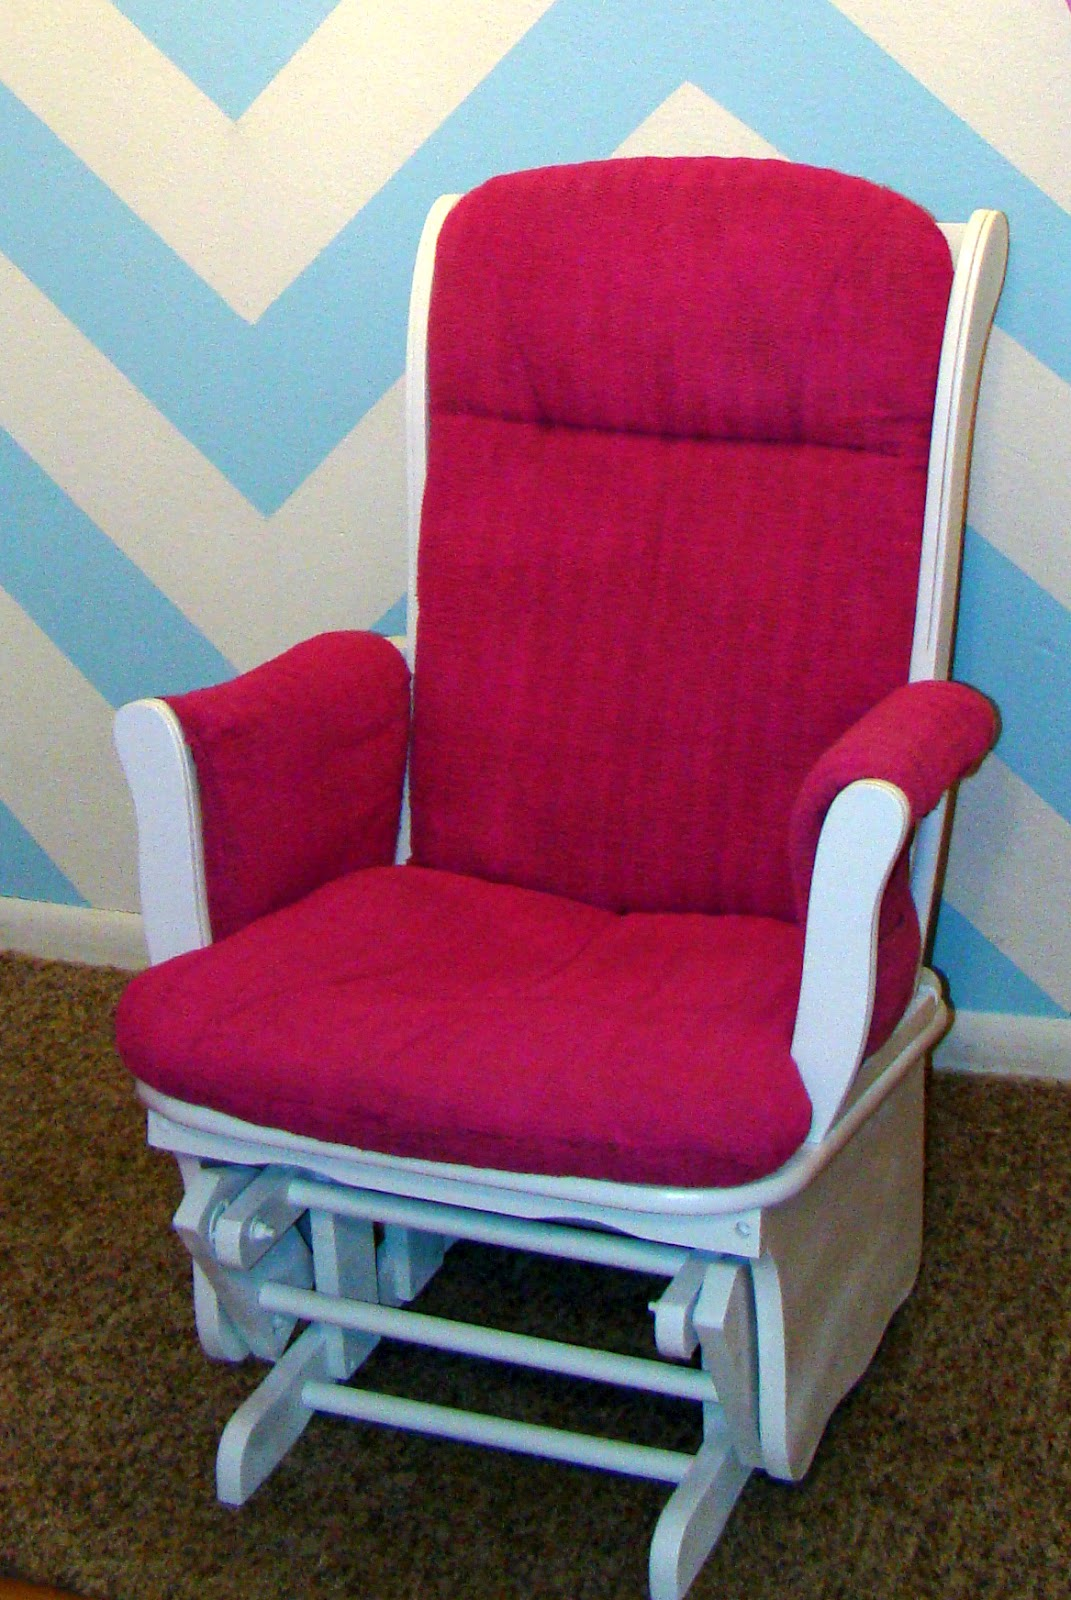 Pink Rocking Chair Cushions Thrift And Thriftability Project Gallery